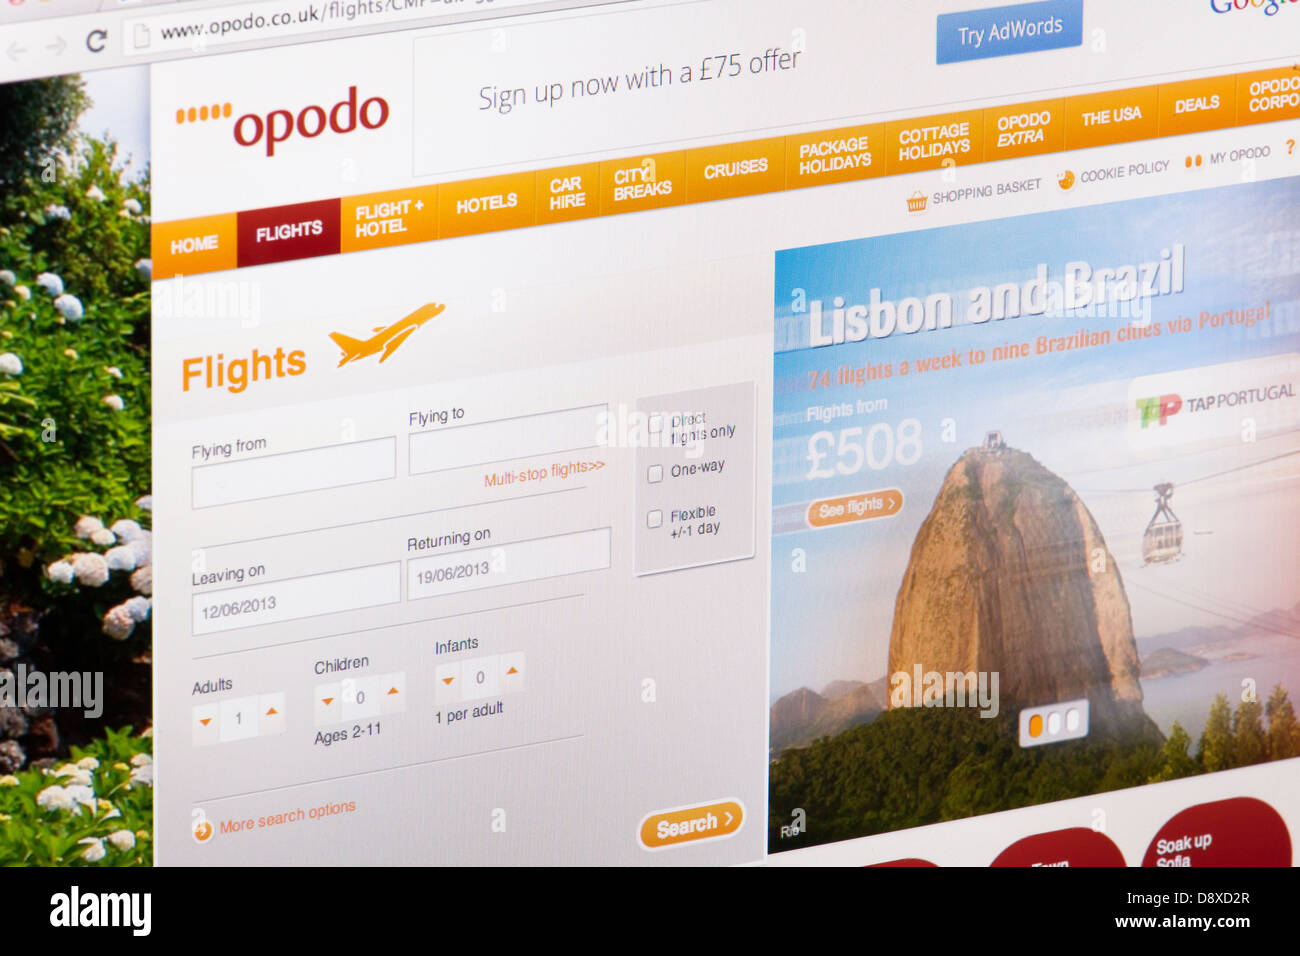 Opodo Flights Website or web page on a laptop screen or computer monitor - Stock Image